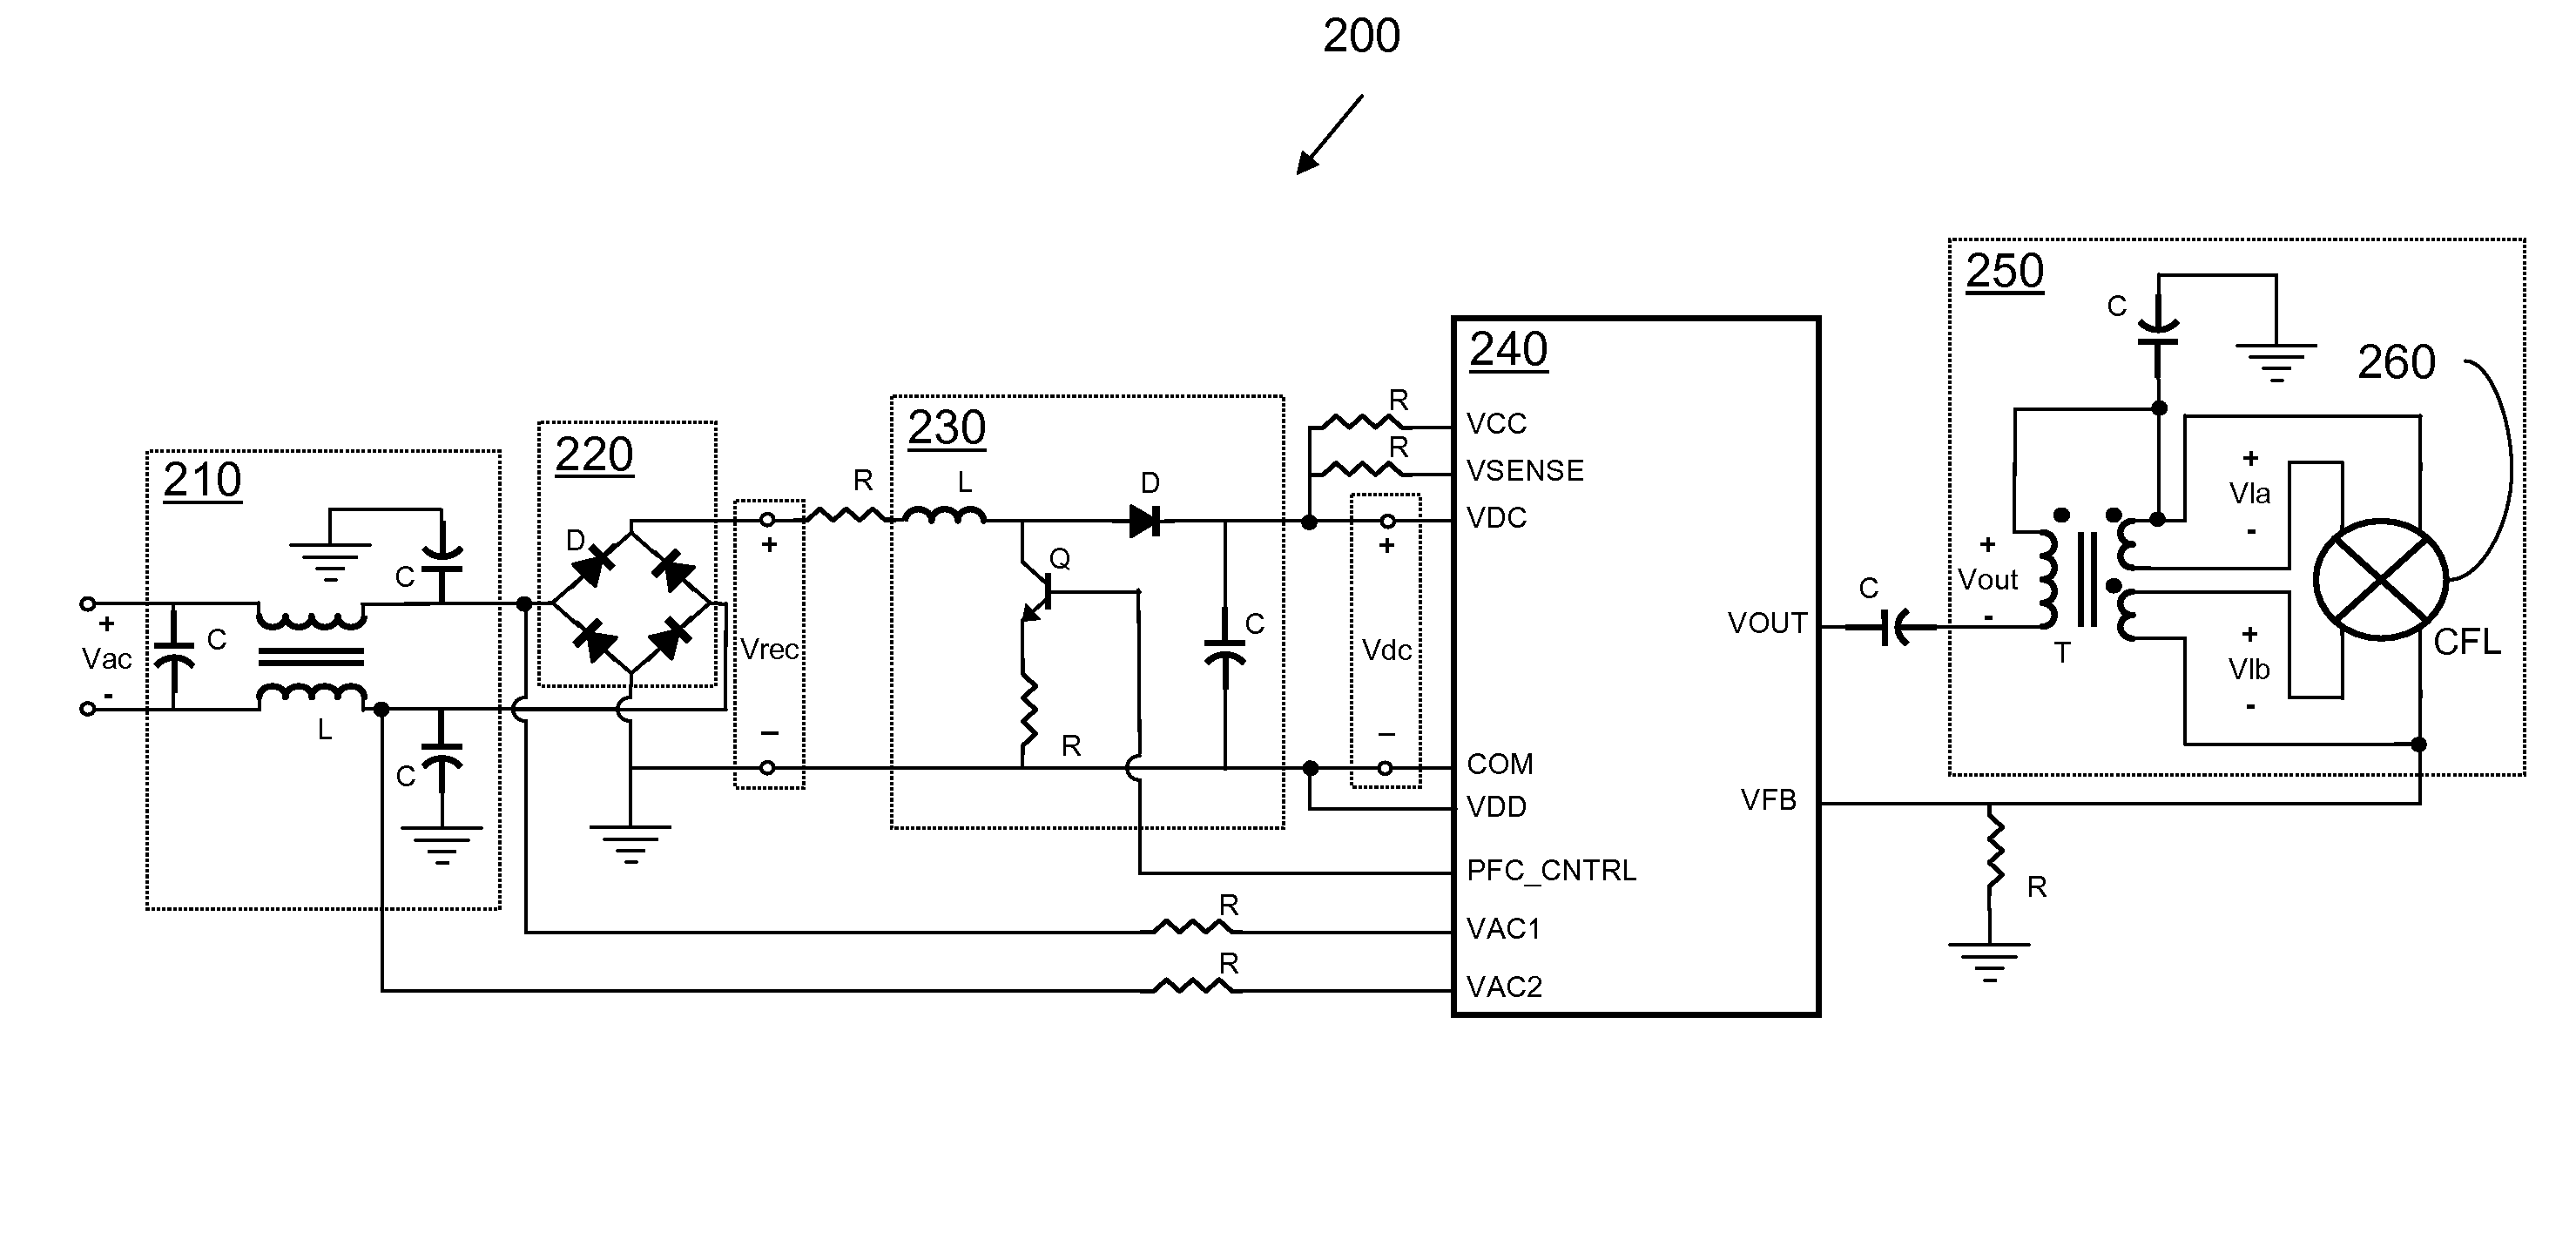 Lamp Switch Schematic